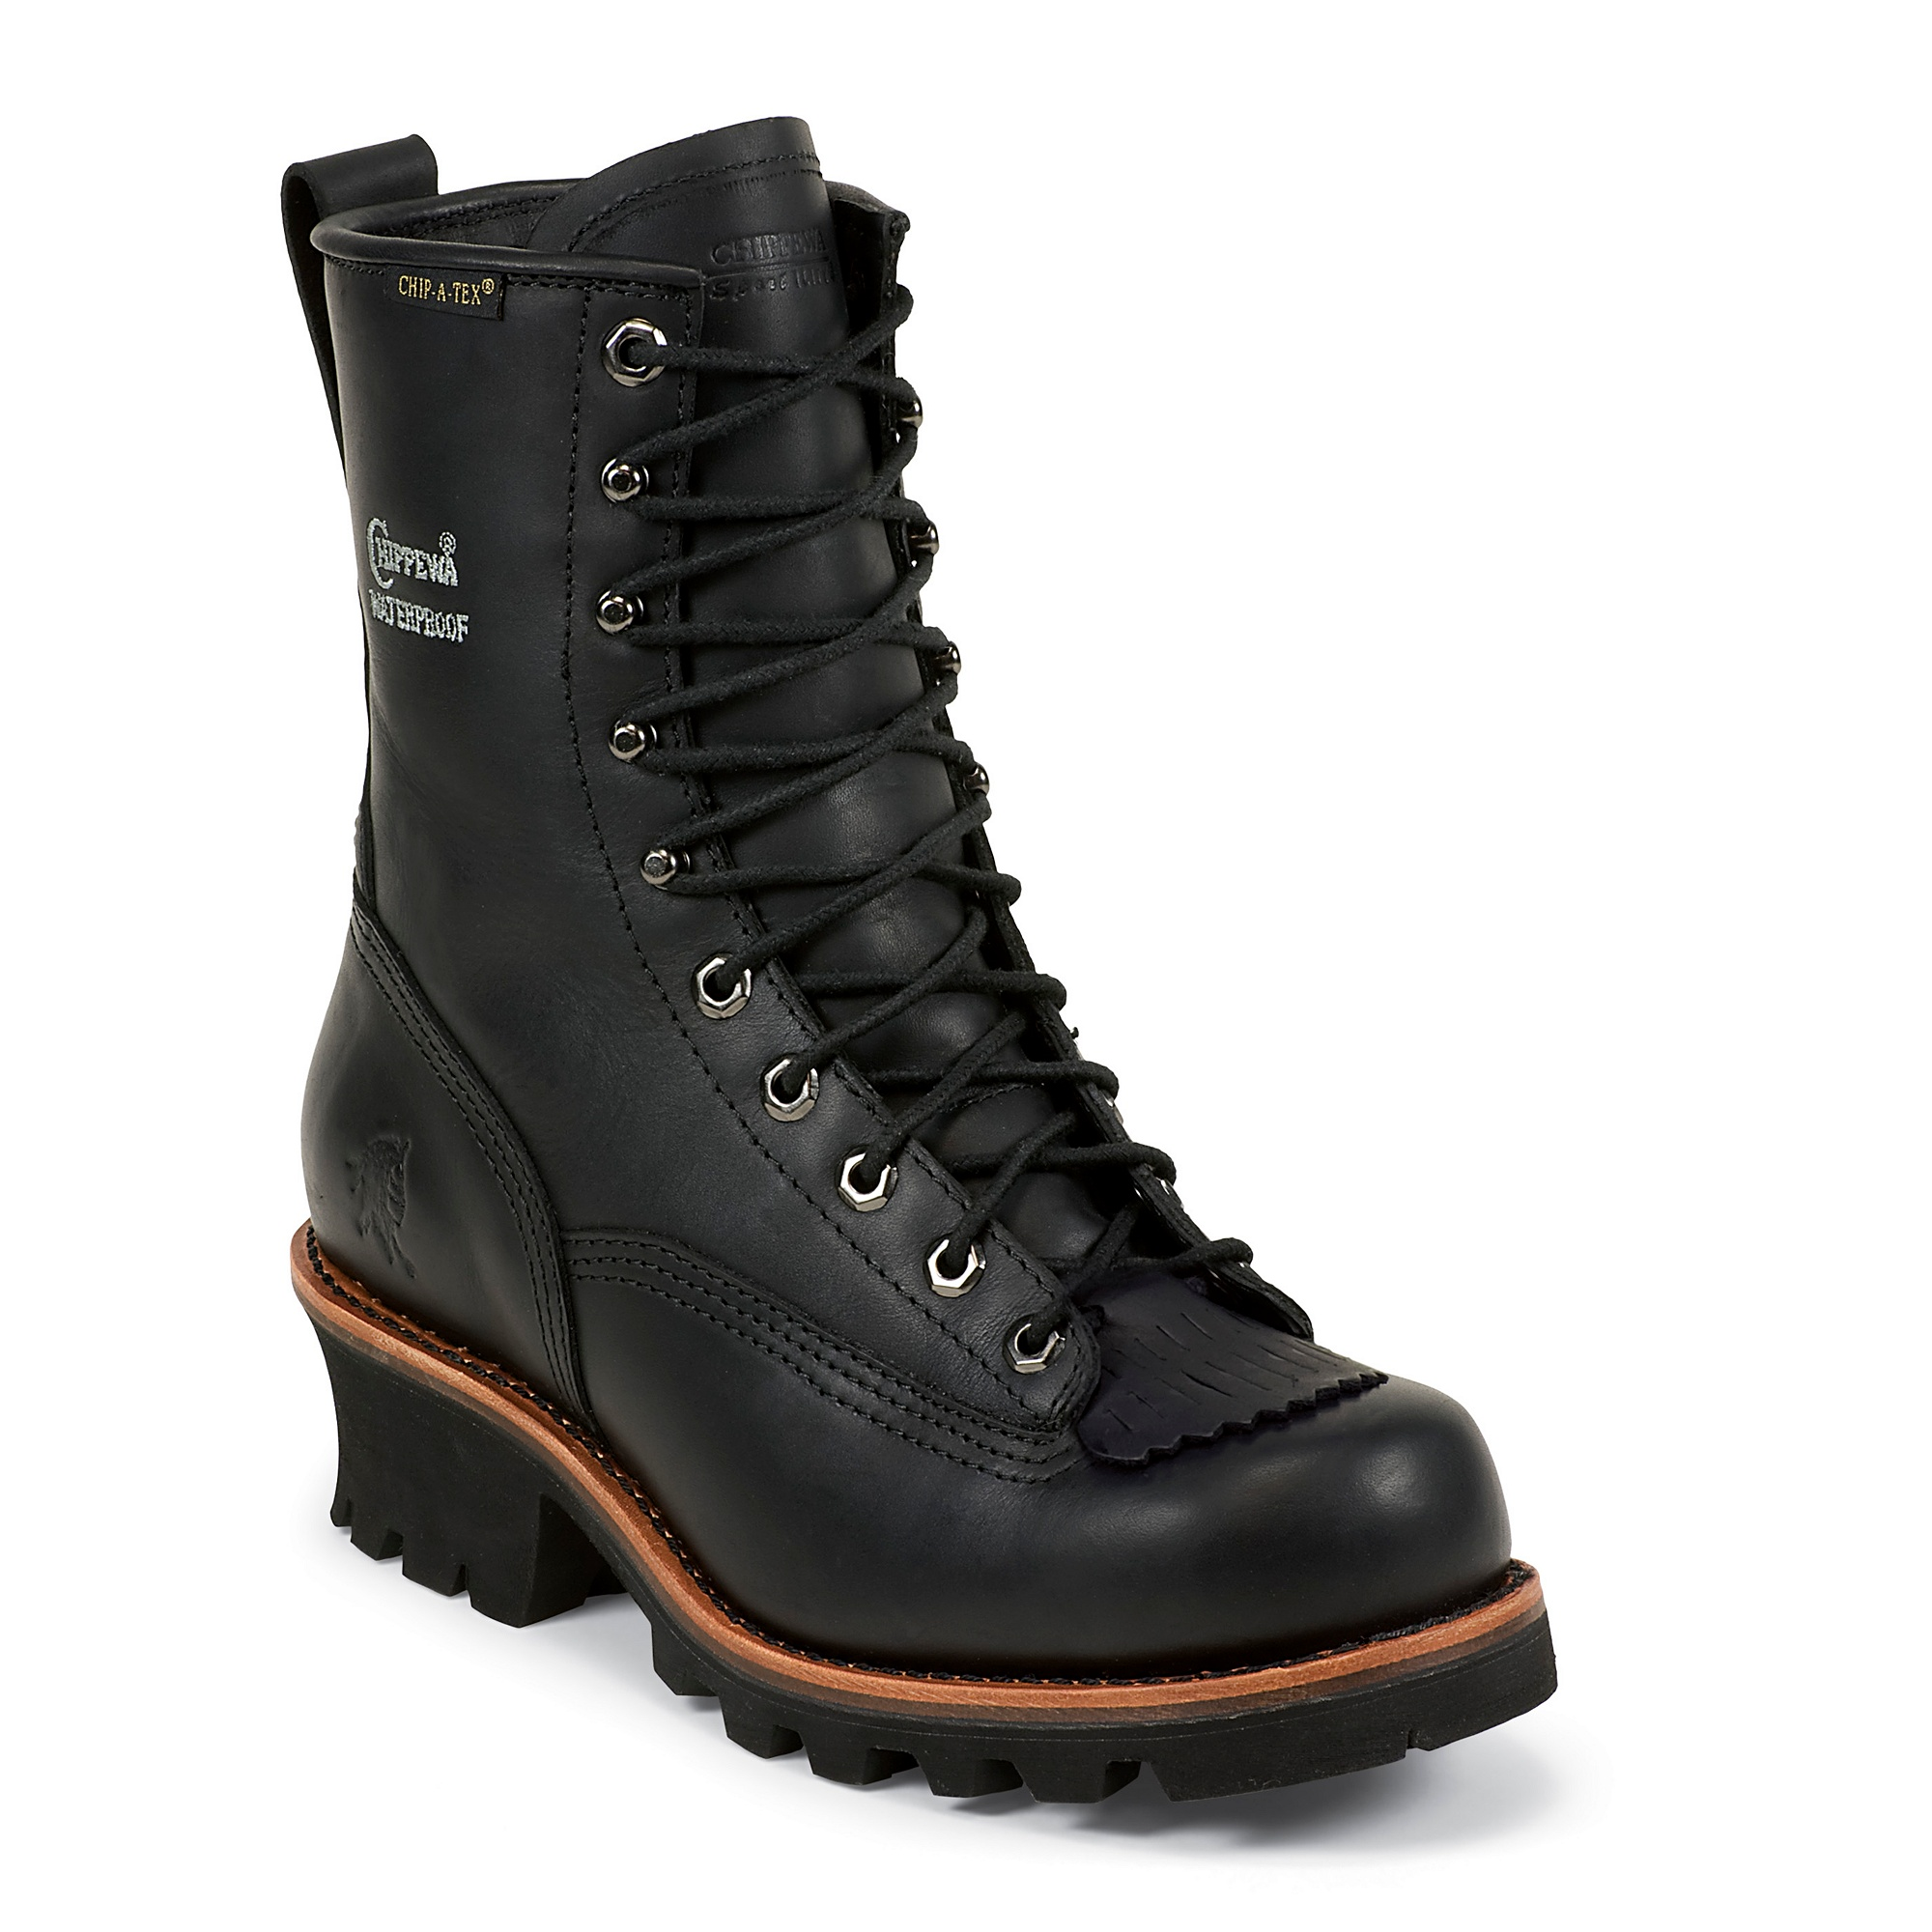 Chippewa 73114 Black Oiled Waterproof Logger